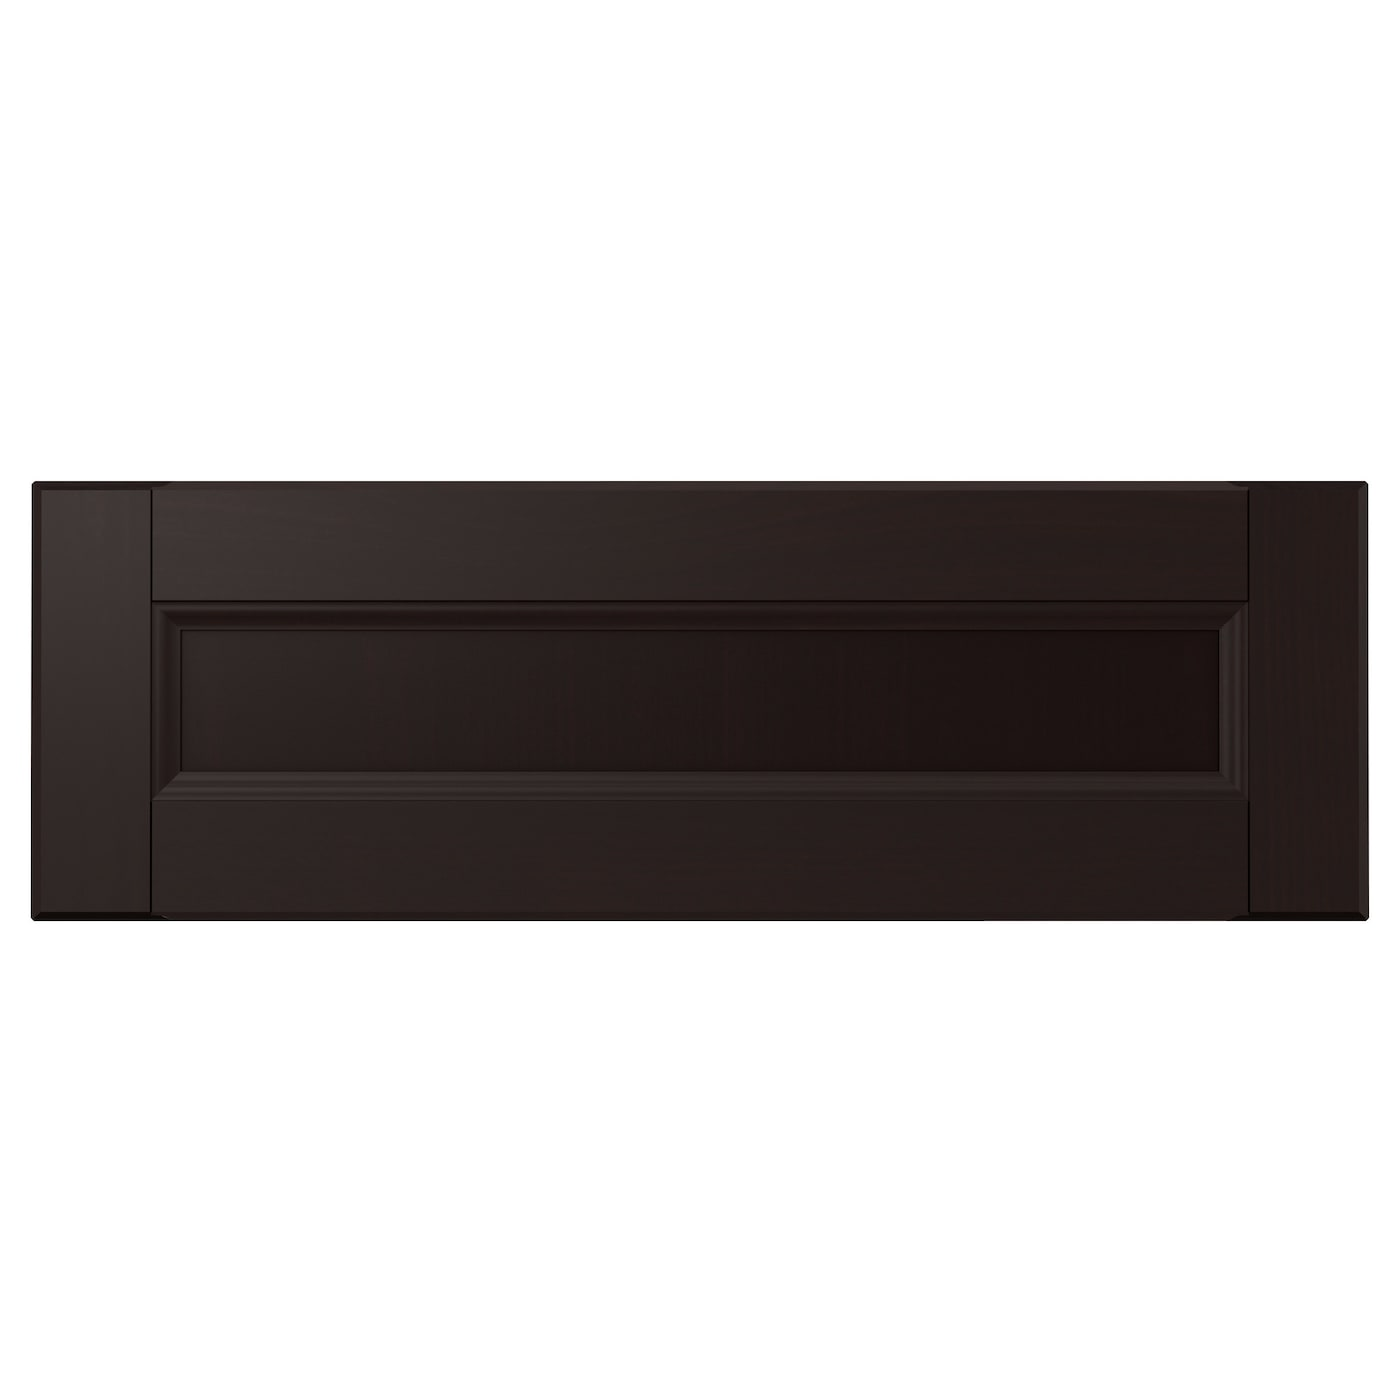 ikea cabinet fronts laxarby drawer front black brown 60x20 cm ikea 17558